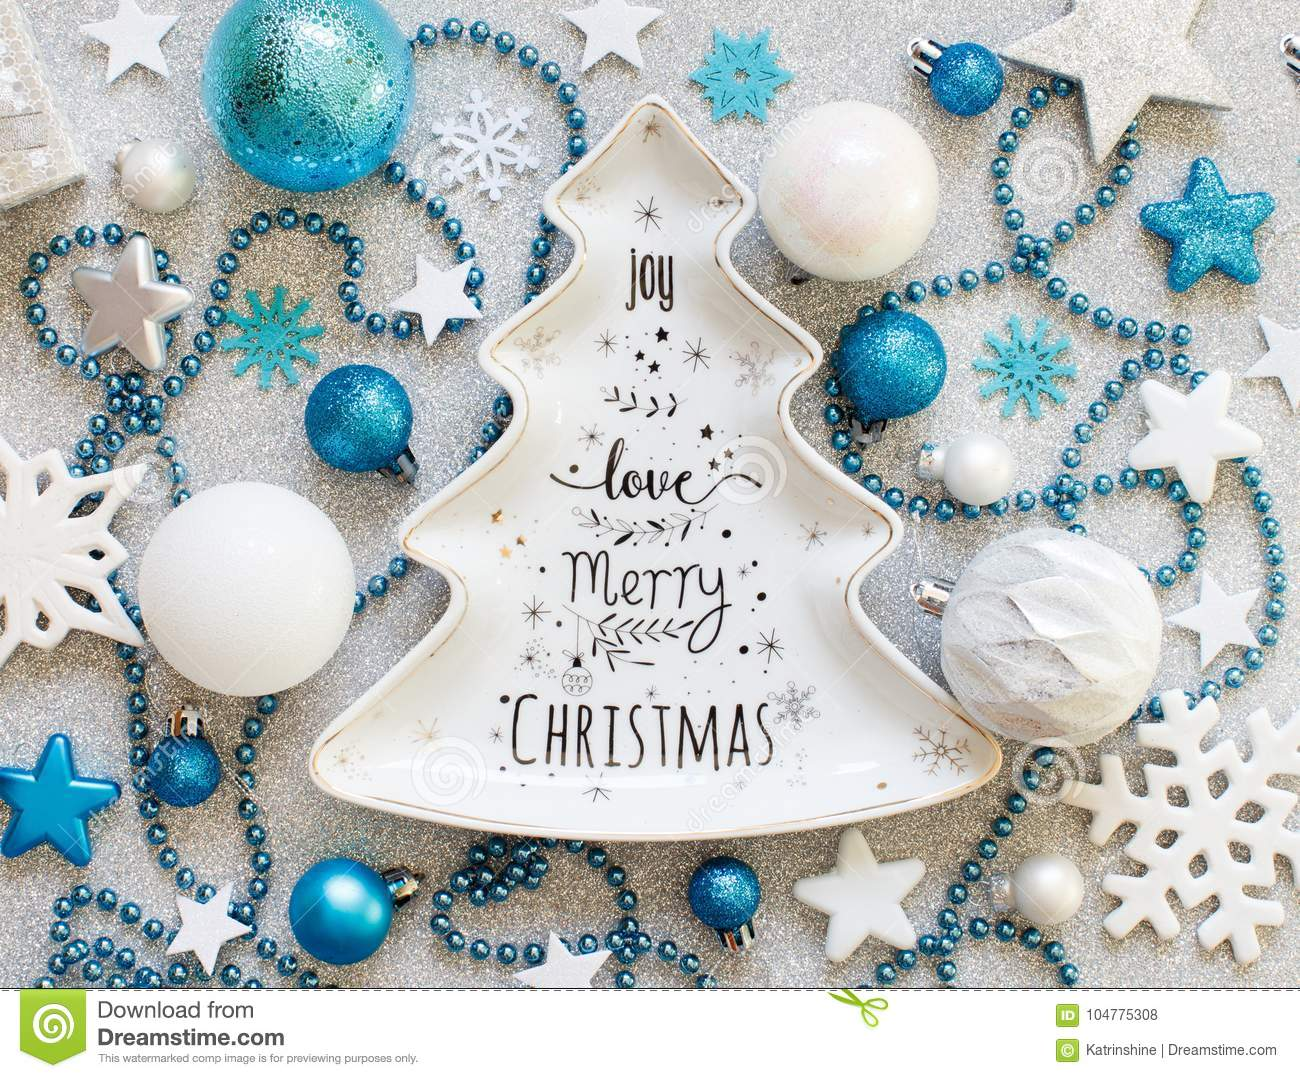 download turquoise blue and silver festive christmas decorations stock photo image of noel elegant